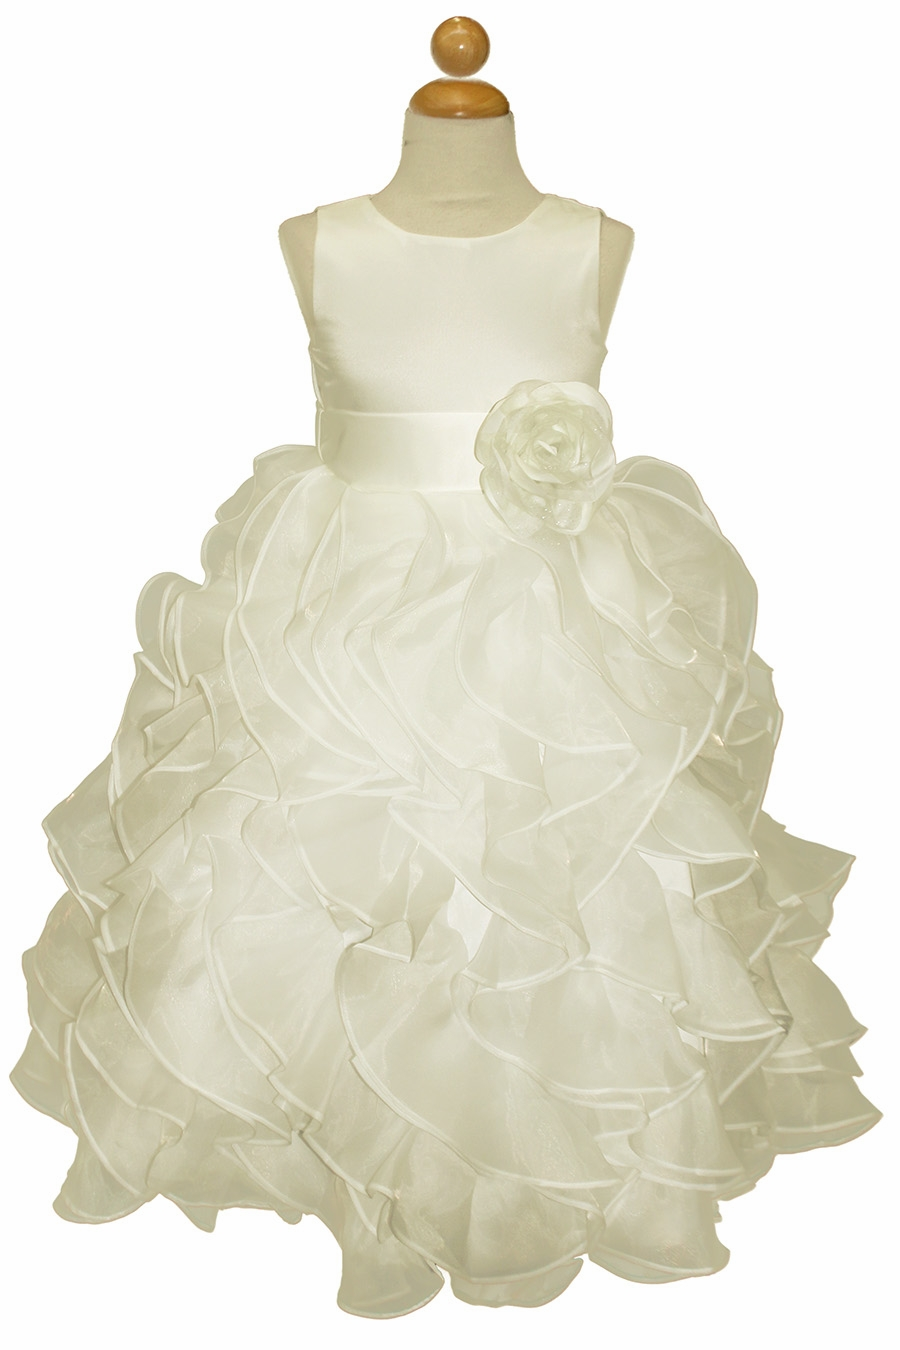 3cd2c8dd506 ... Layered Flower Girl Dress w  Satin Flower Sash. Click to Enlarge Click  to Enlarge ...